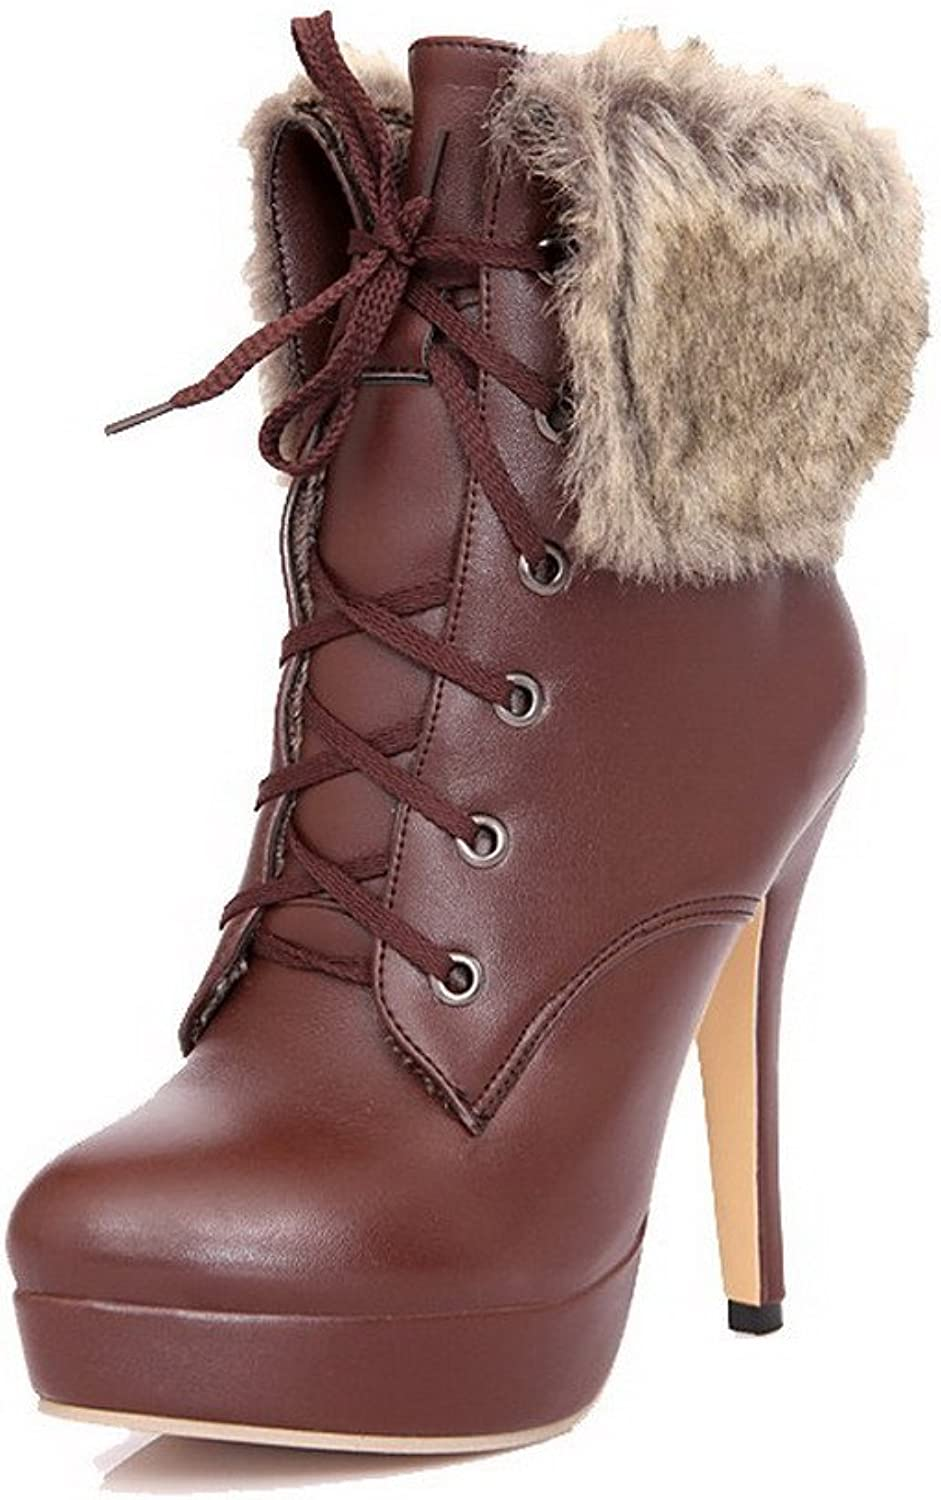 WeenFashion Women's Soft Material Lace up Round Closed Toe High-Heels Low-top Boots